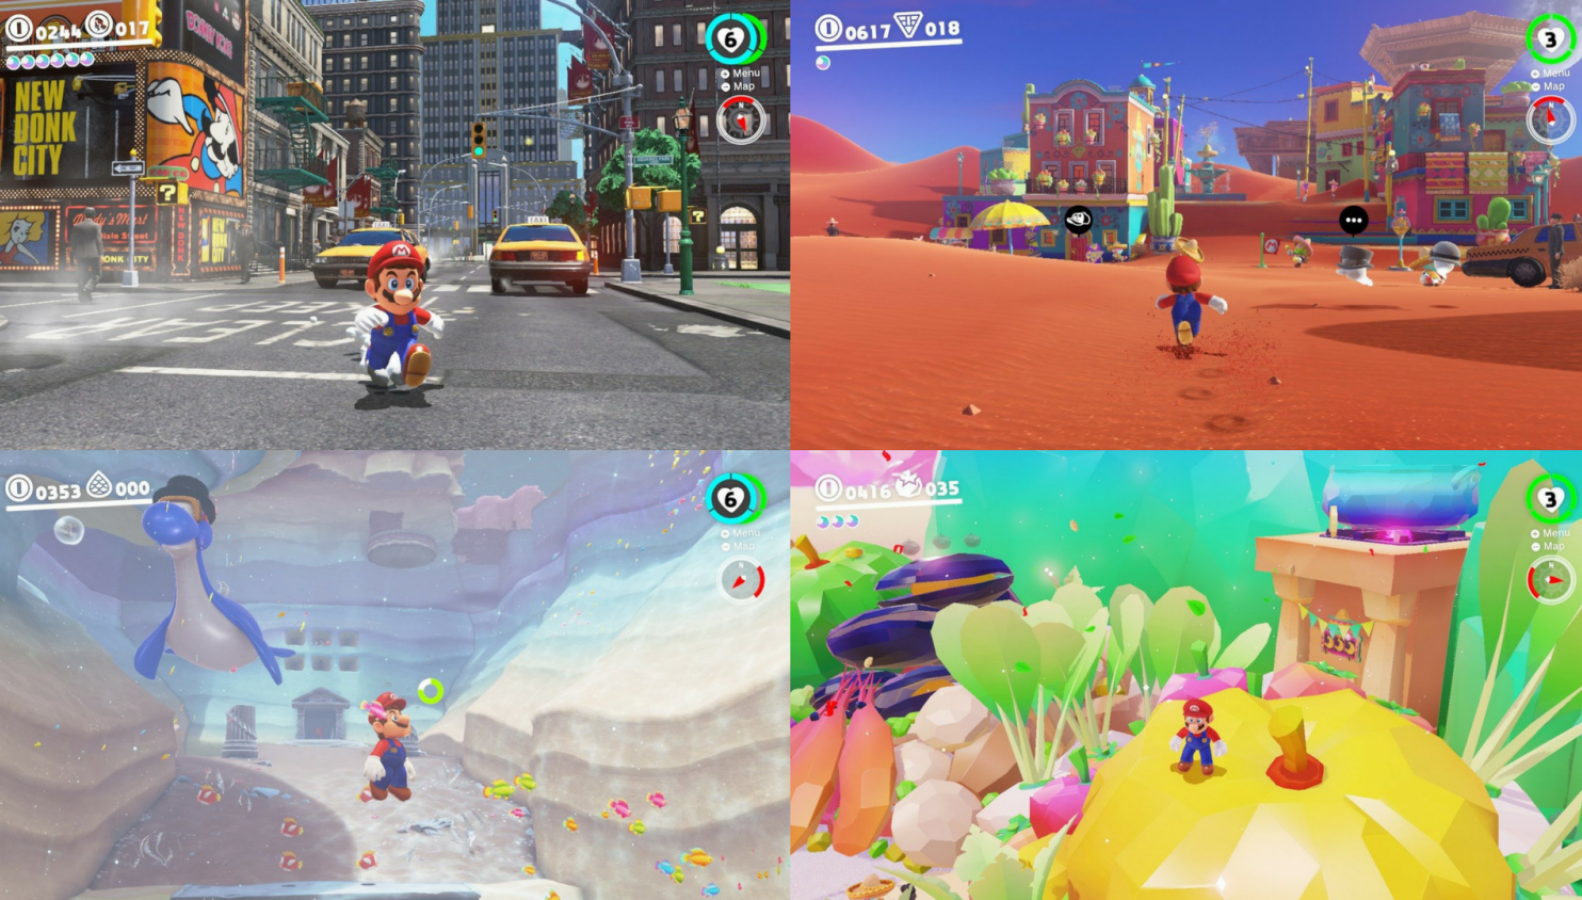 Super Mario Odyssey' has the titular hero trekking through a slew of new and creative worlds that have never been seen before in a Mario game.  New Donk City (top left), for example, features a realistic cityscape with equally realistic looking citizens.